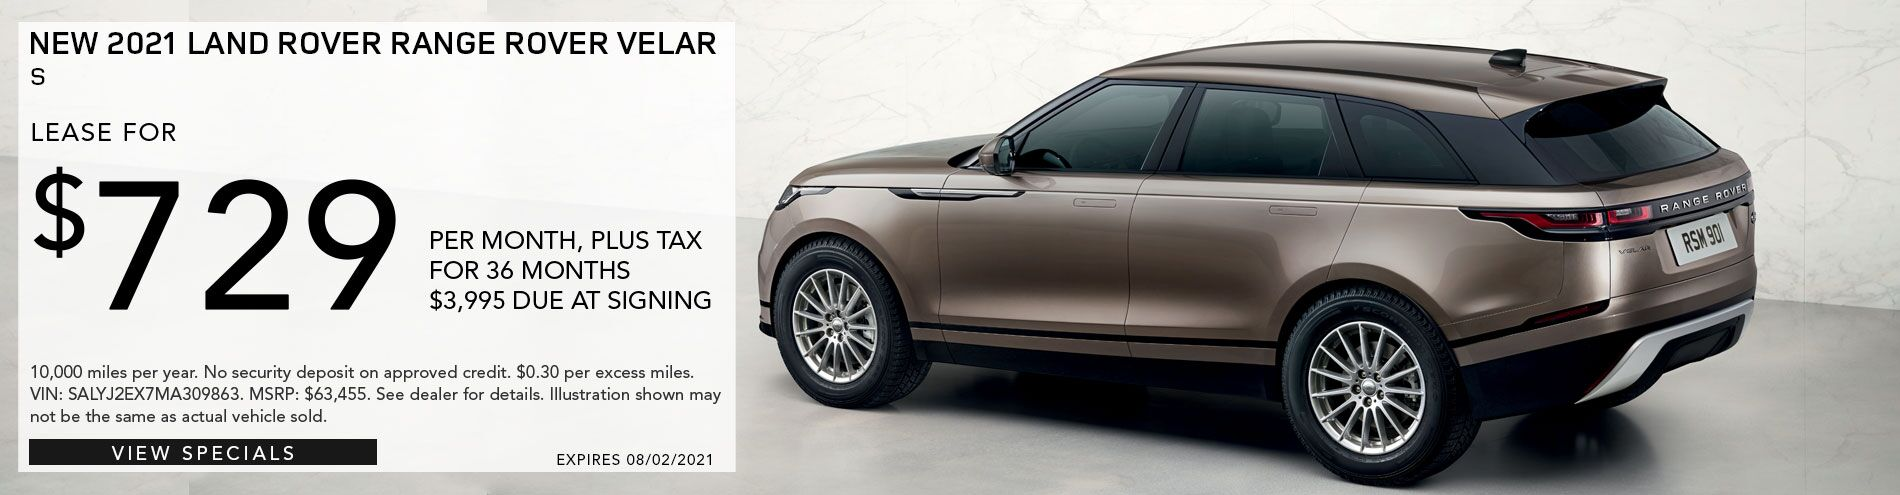 2019 Range Rover Velar for sale only at Land Rover Pasadena